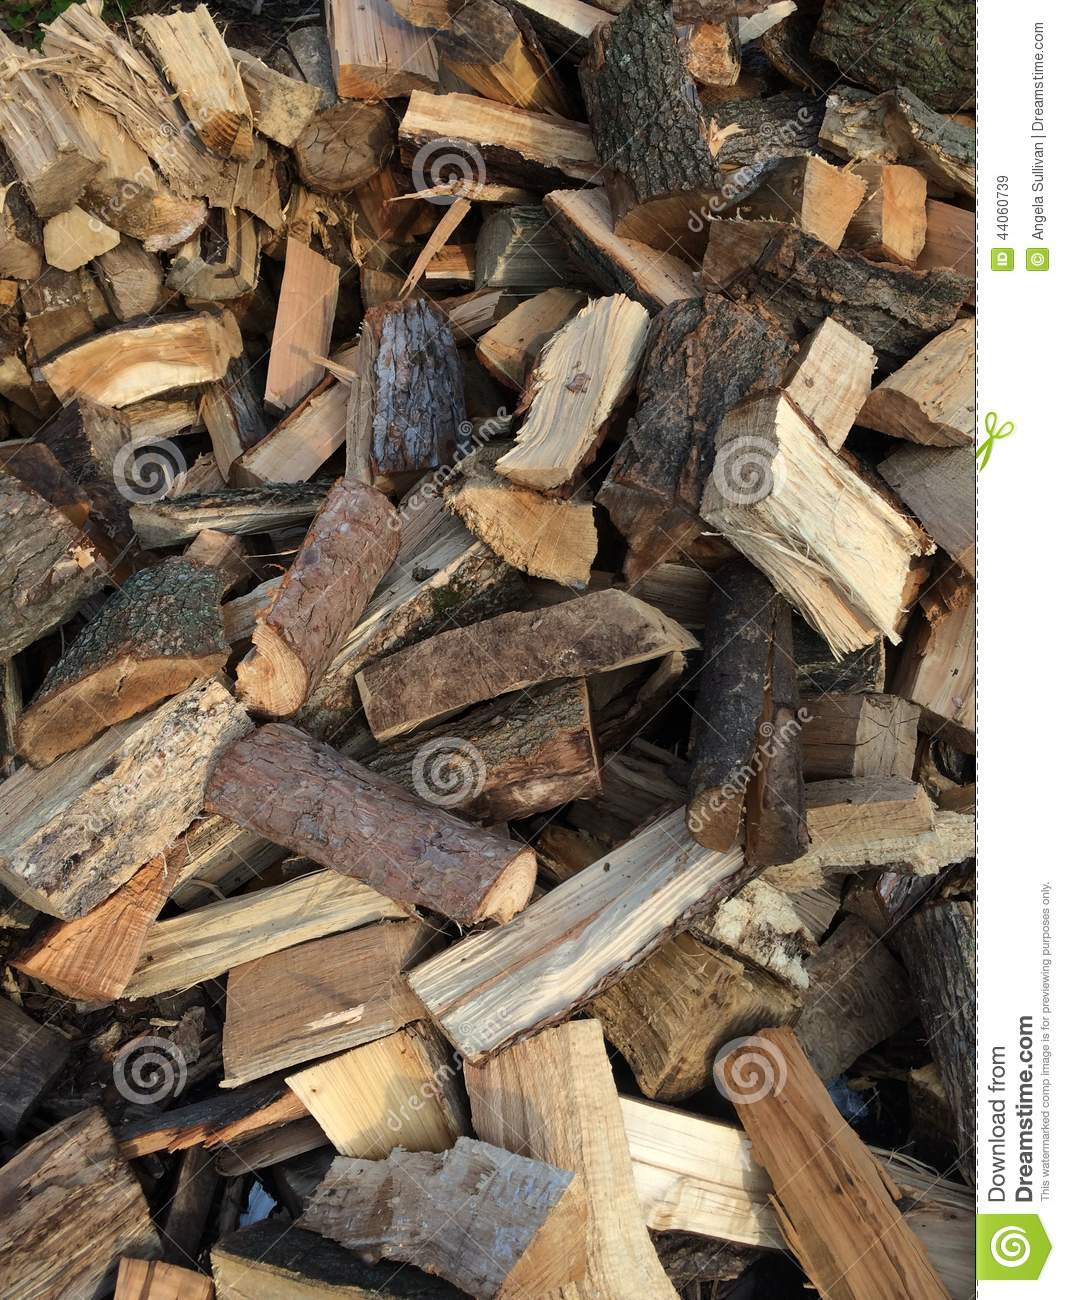 Cut Wood Logs ~ Cut and split pieces of firewood logs from a tree stock